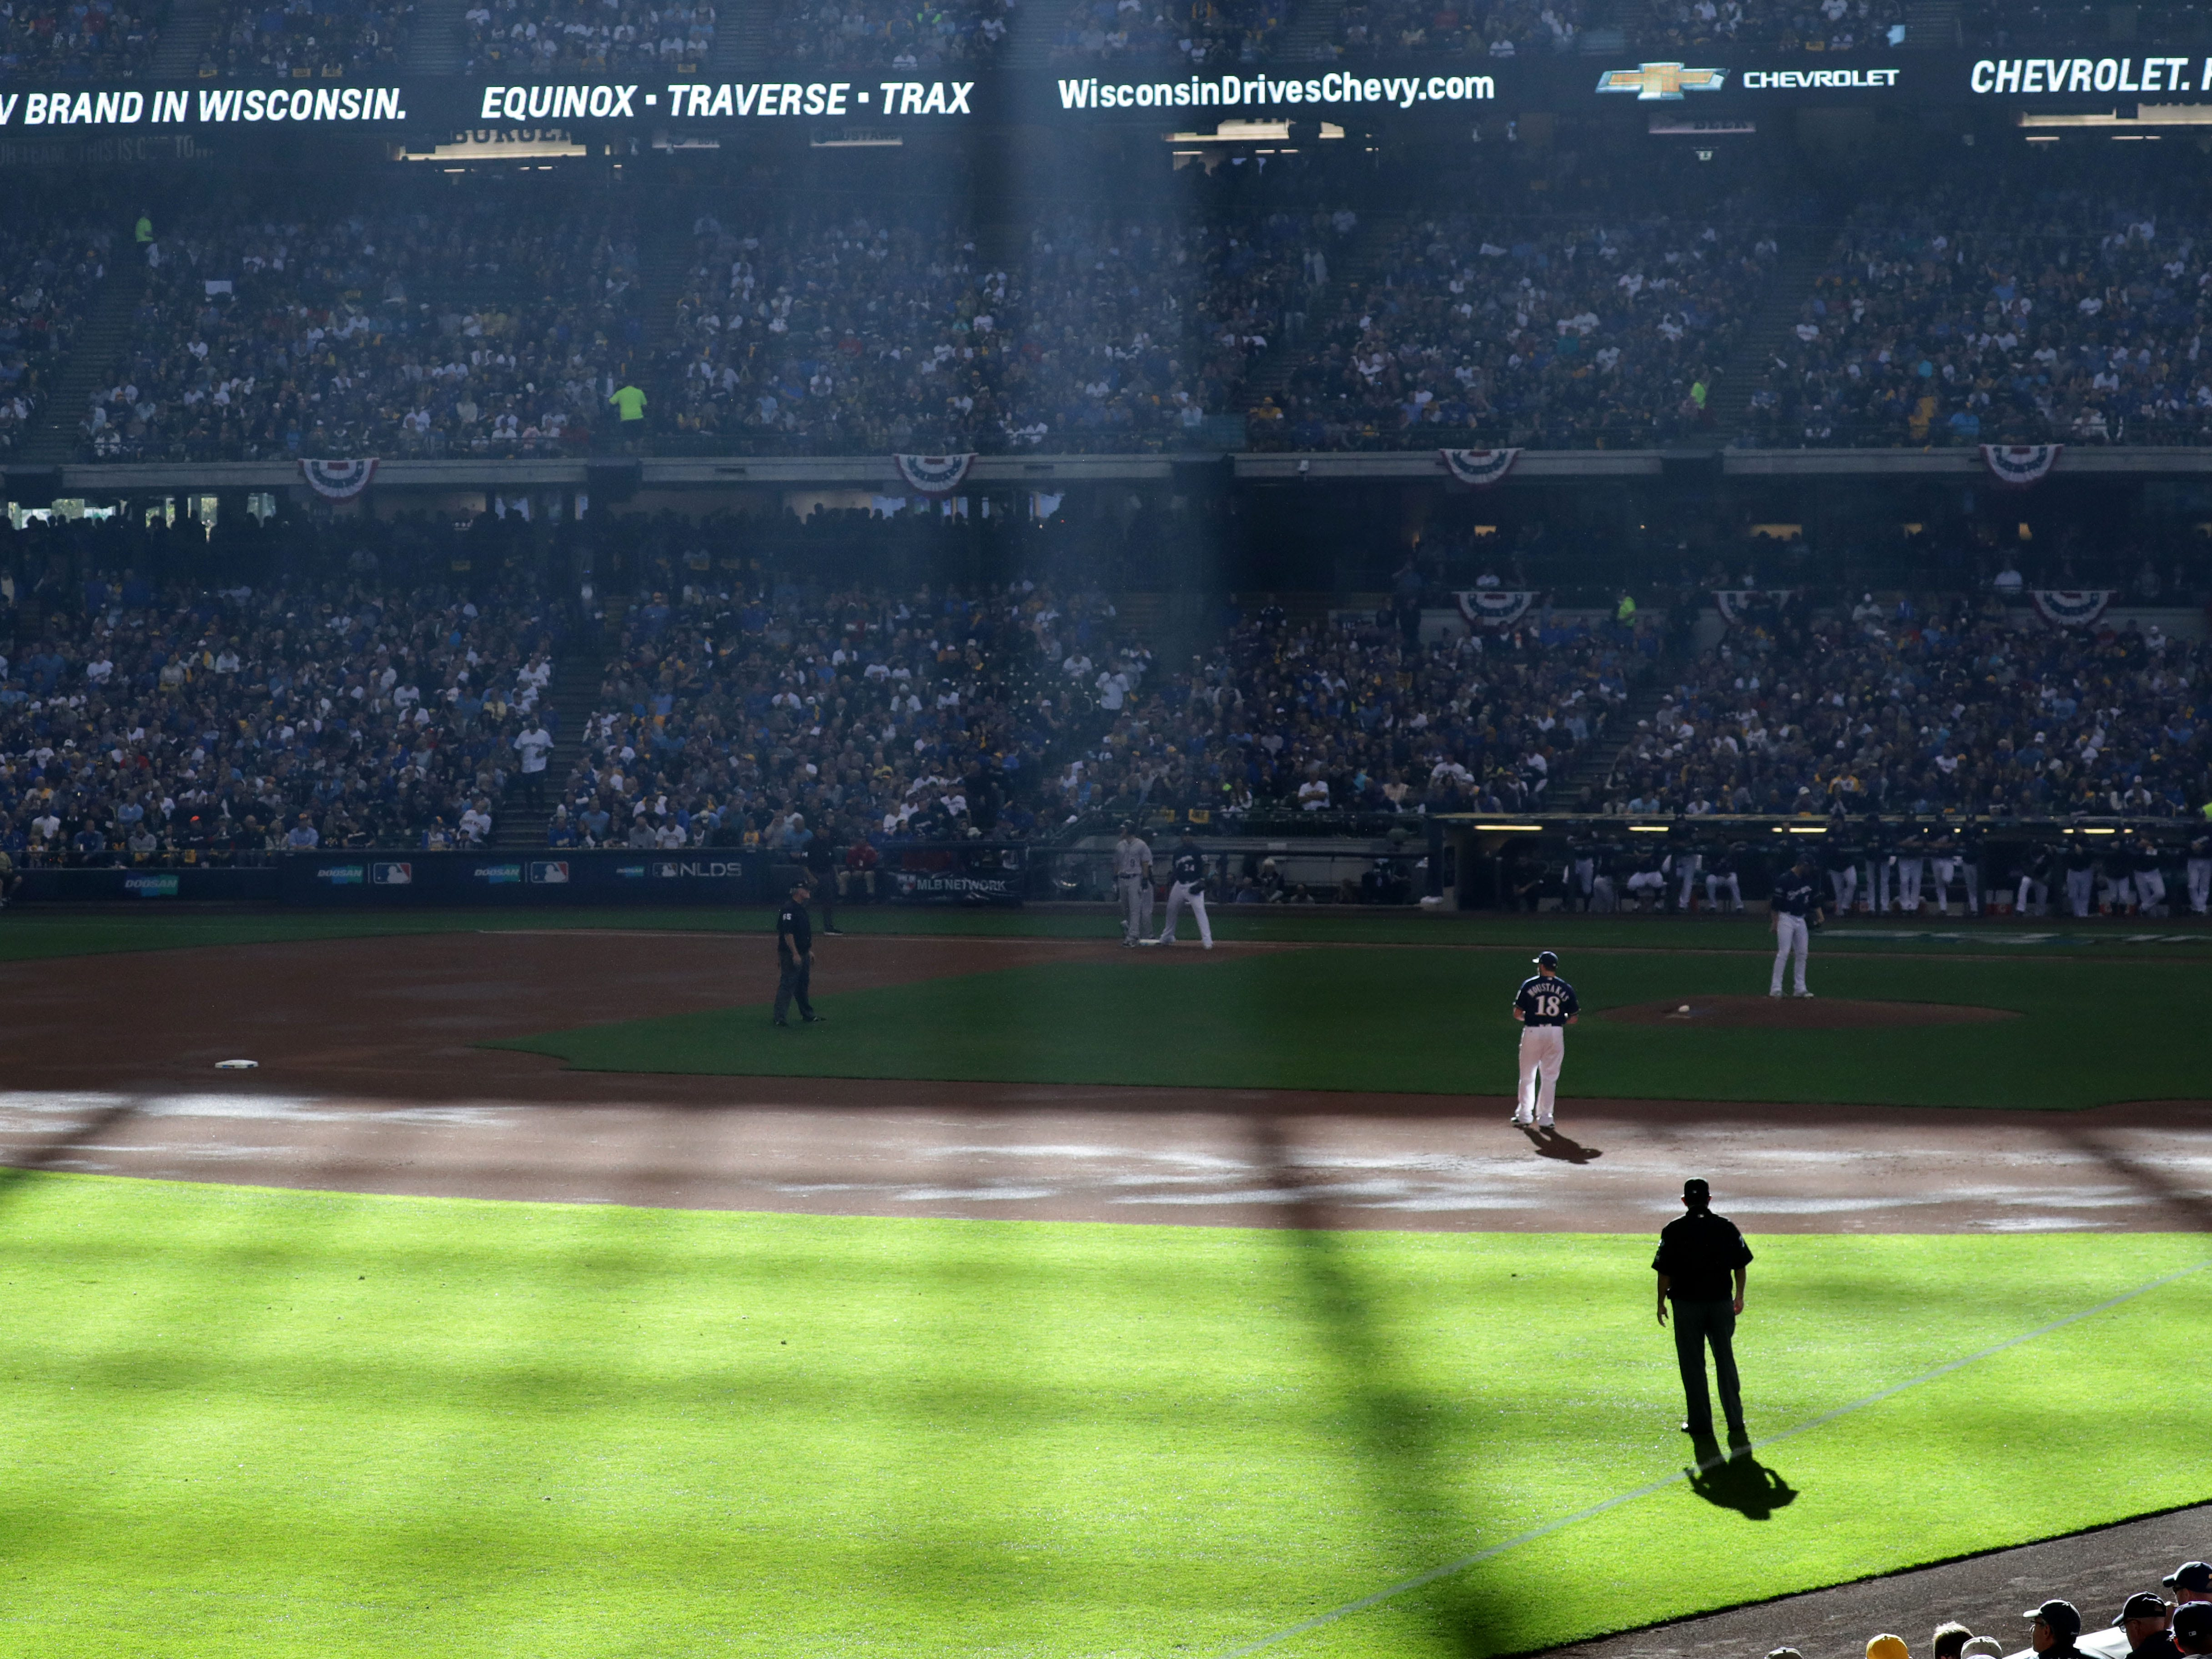 Sunlight shines on the field during the Milwaukee Brewers' National League Divisional Series game against the Colorado Rockies on Thursday.